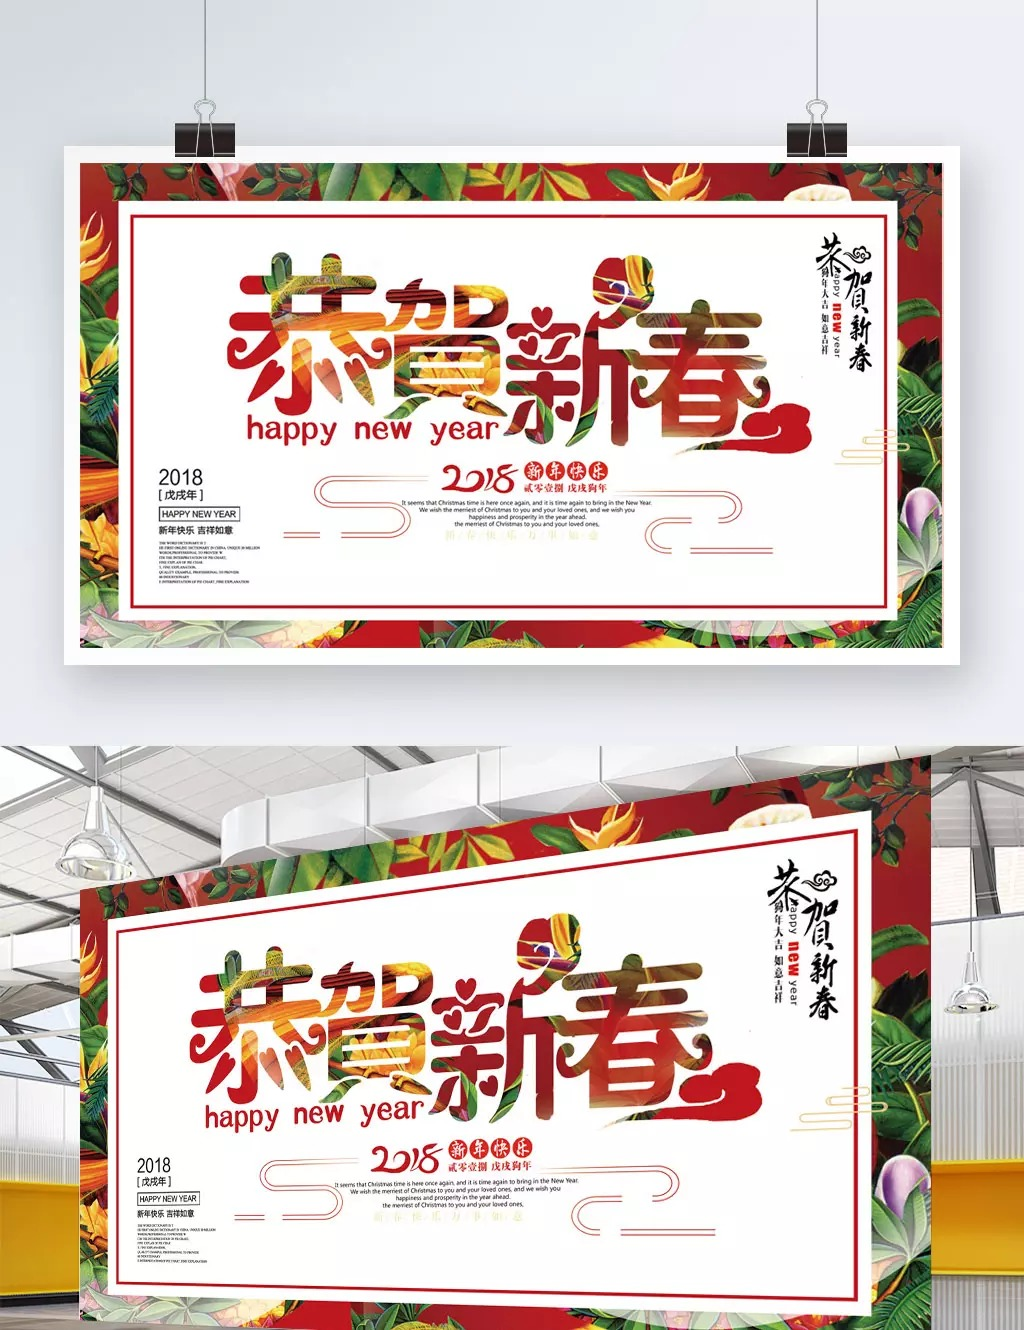 Spring Festival Posters Templates Psd 134 Design Templates For Free Download